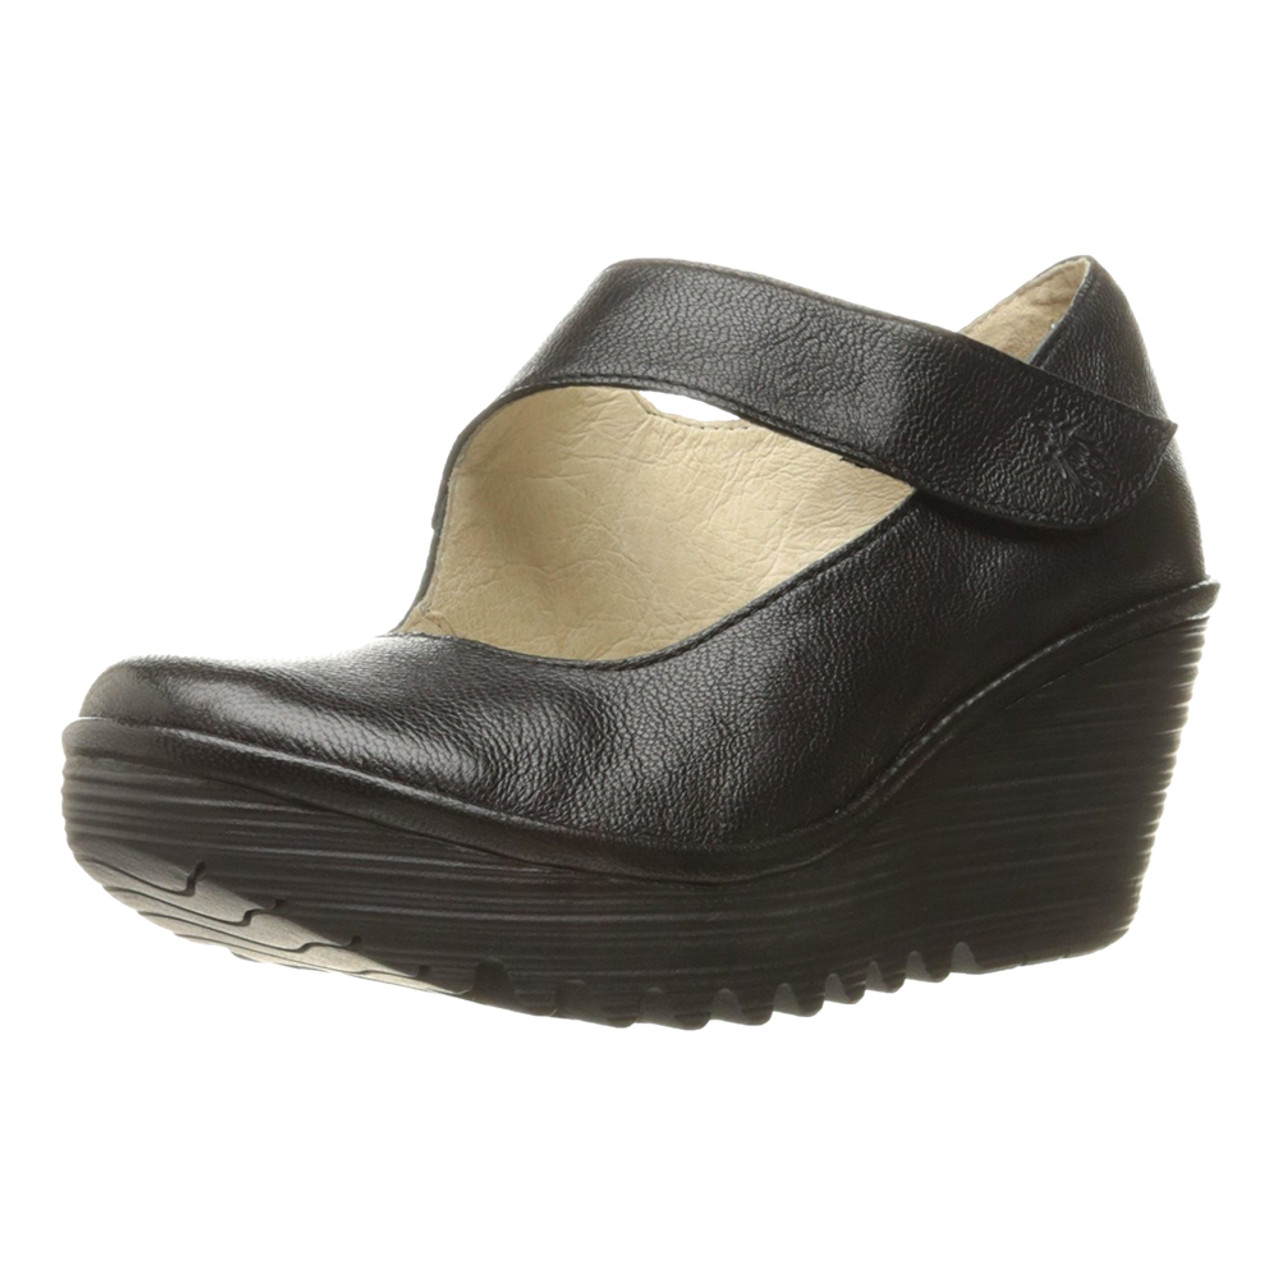 1a28bac3853ee Fly London Women's Yasi Wedge Black Mousse